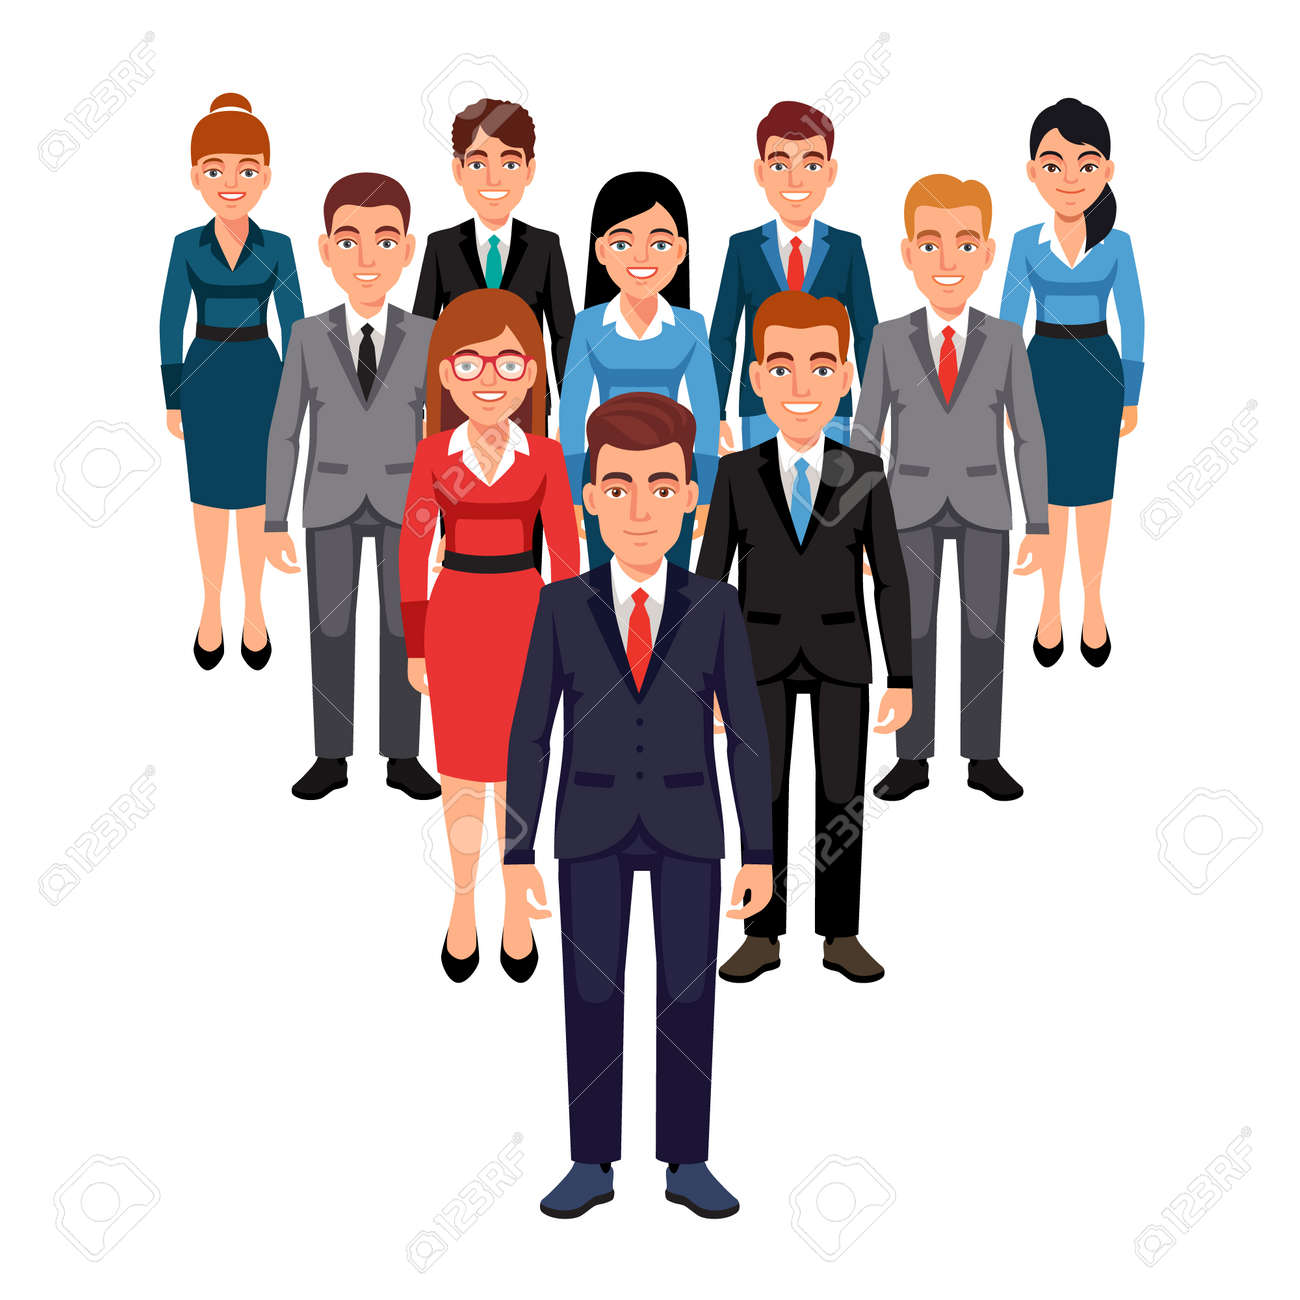 Executives team standing in form of triangle pyramid behind their leader. Leadership concept. Flat style vector illustration isolated on white background. - 52901819